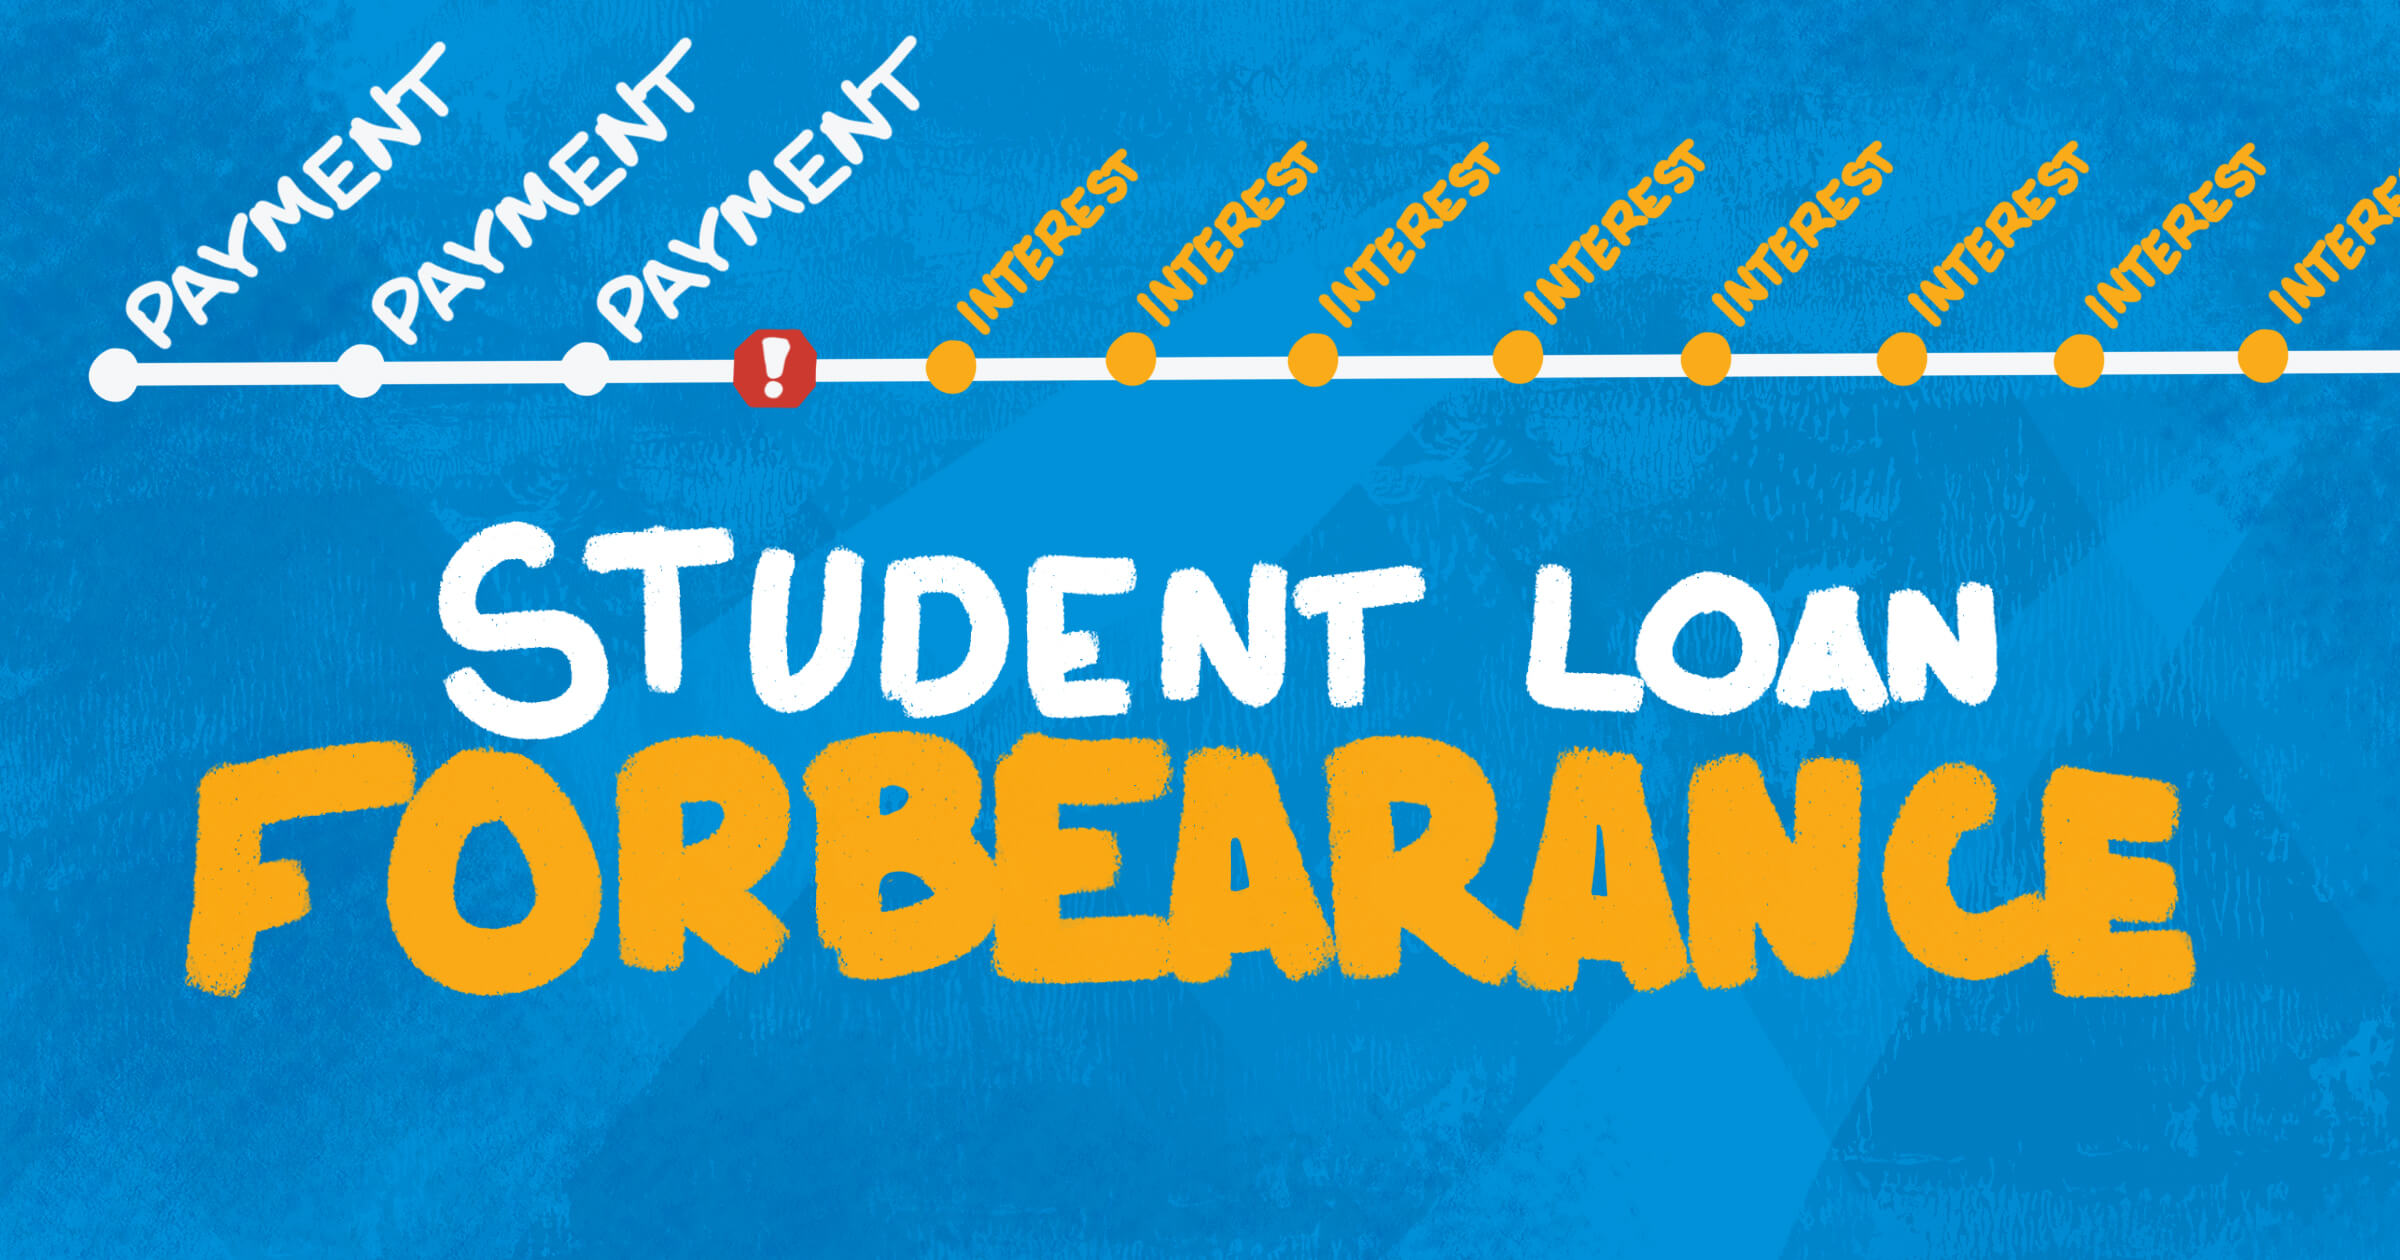 What Is Student Loan Forbearance?